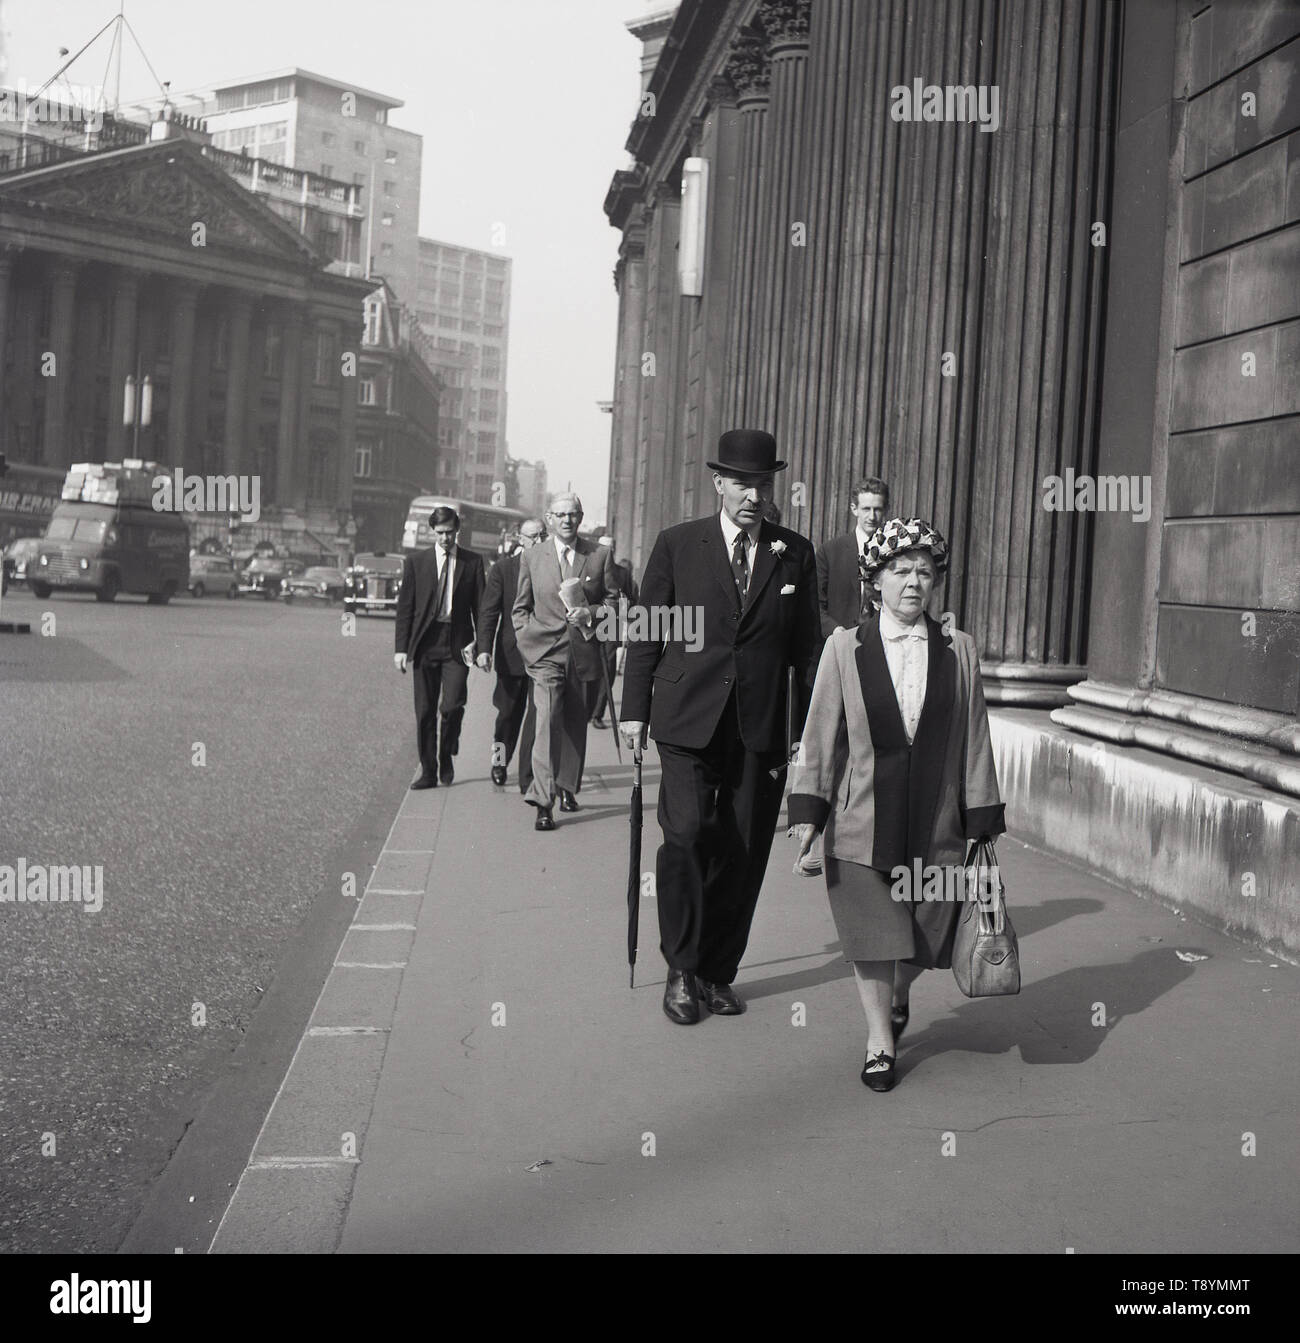 1950s, historical, city of London, people, incluing a suited city gentleman wearing a top hat and carrying an umbrella walking past the Bank of England. - Stock Image